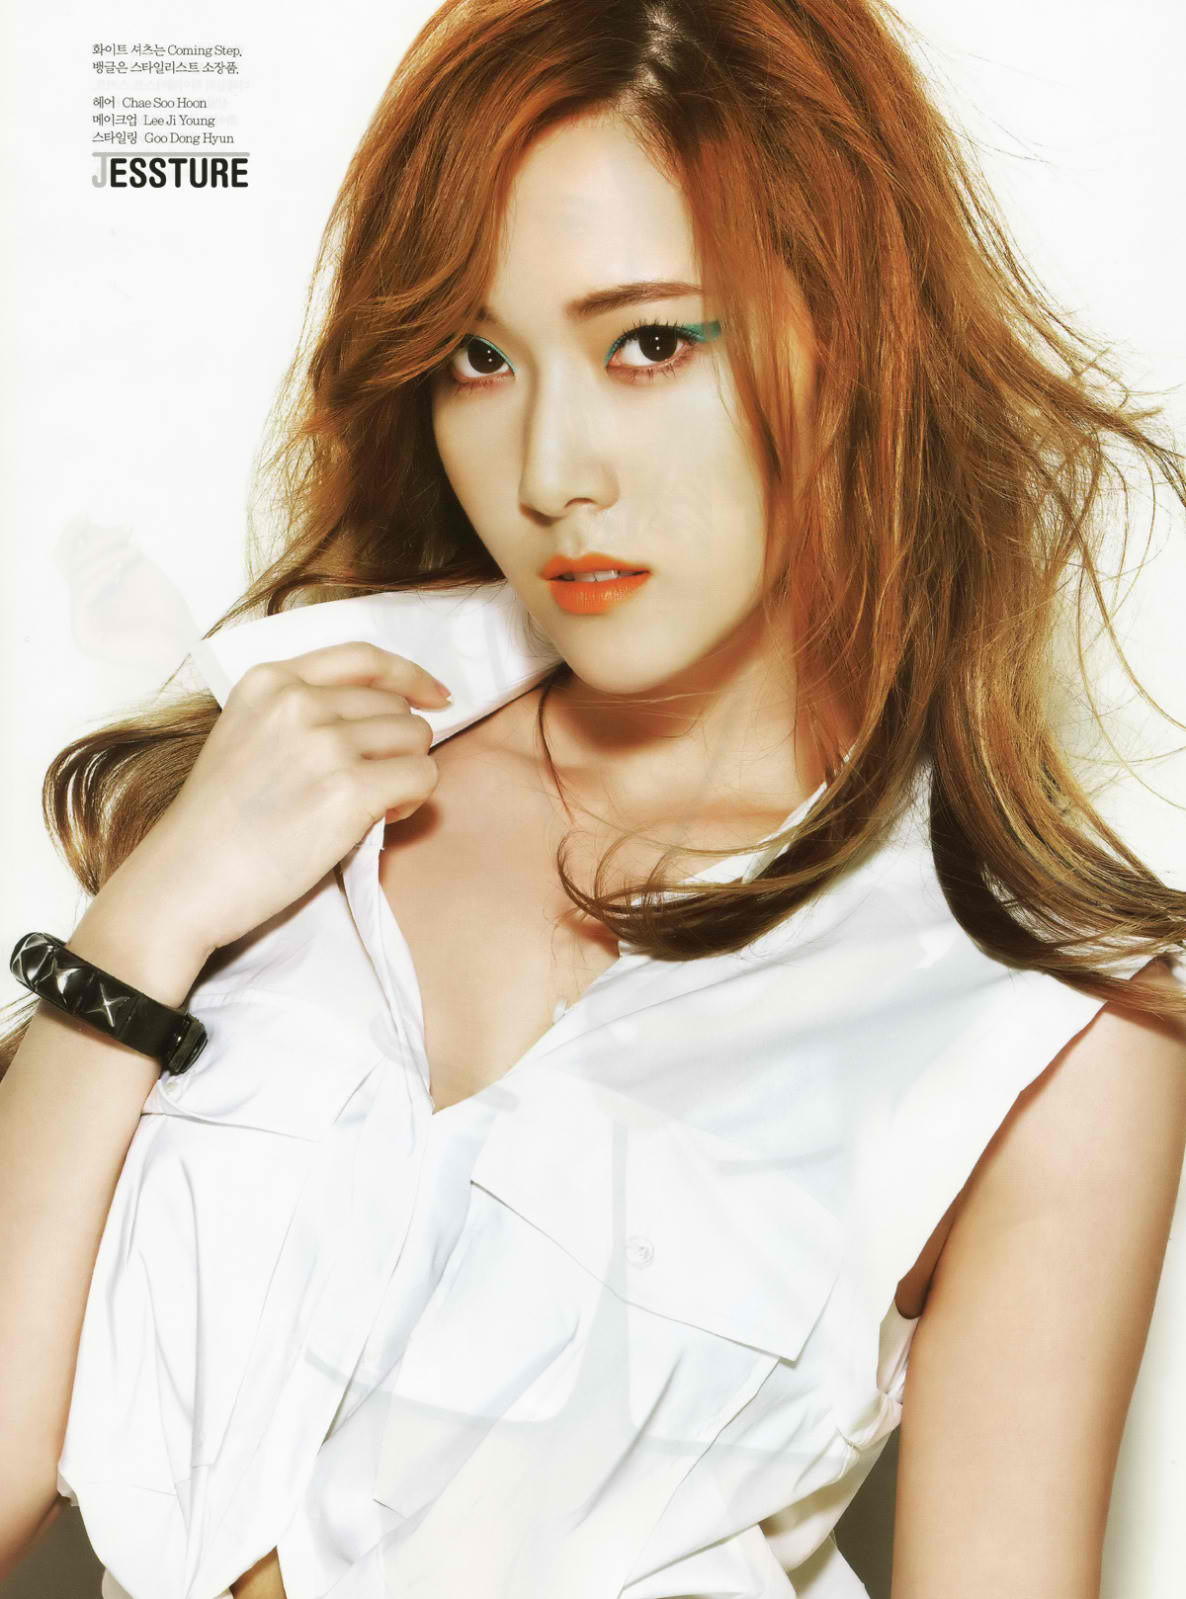 Looking is snsd for jessica catalog photo